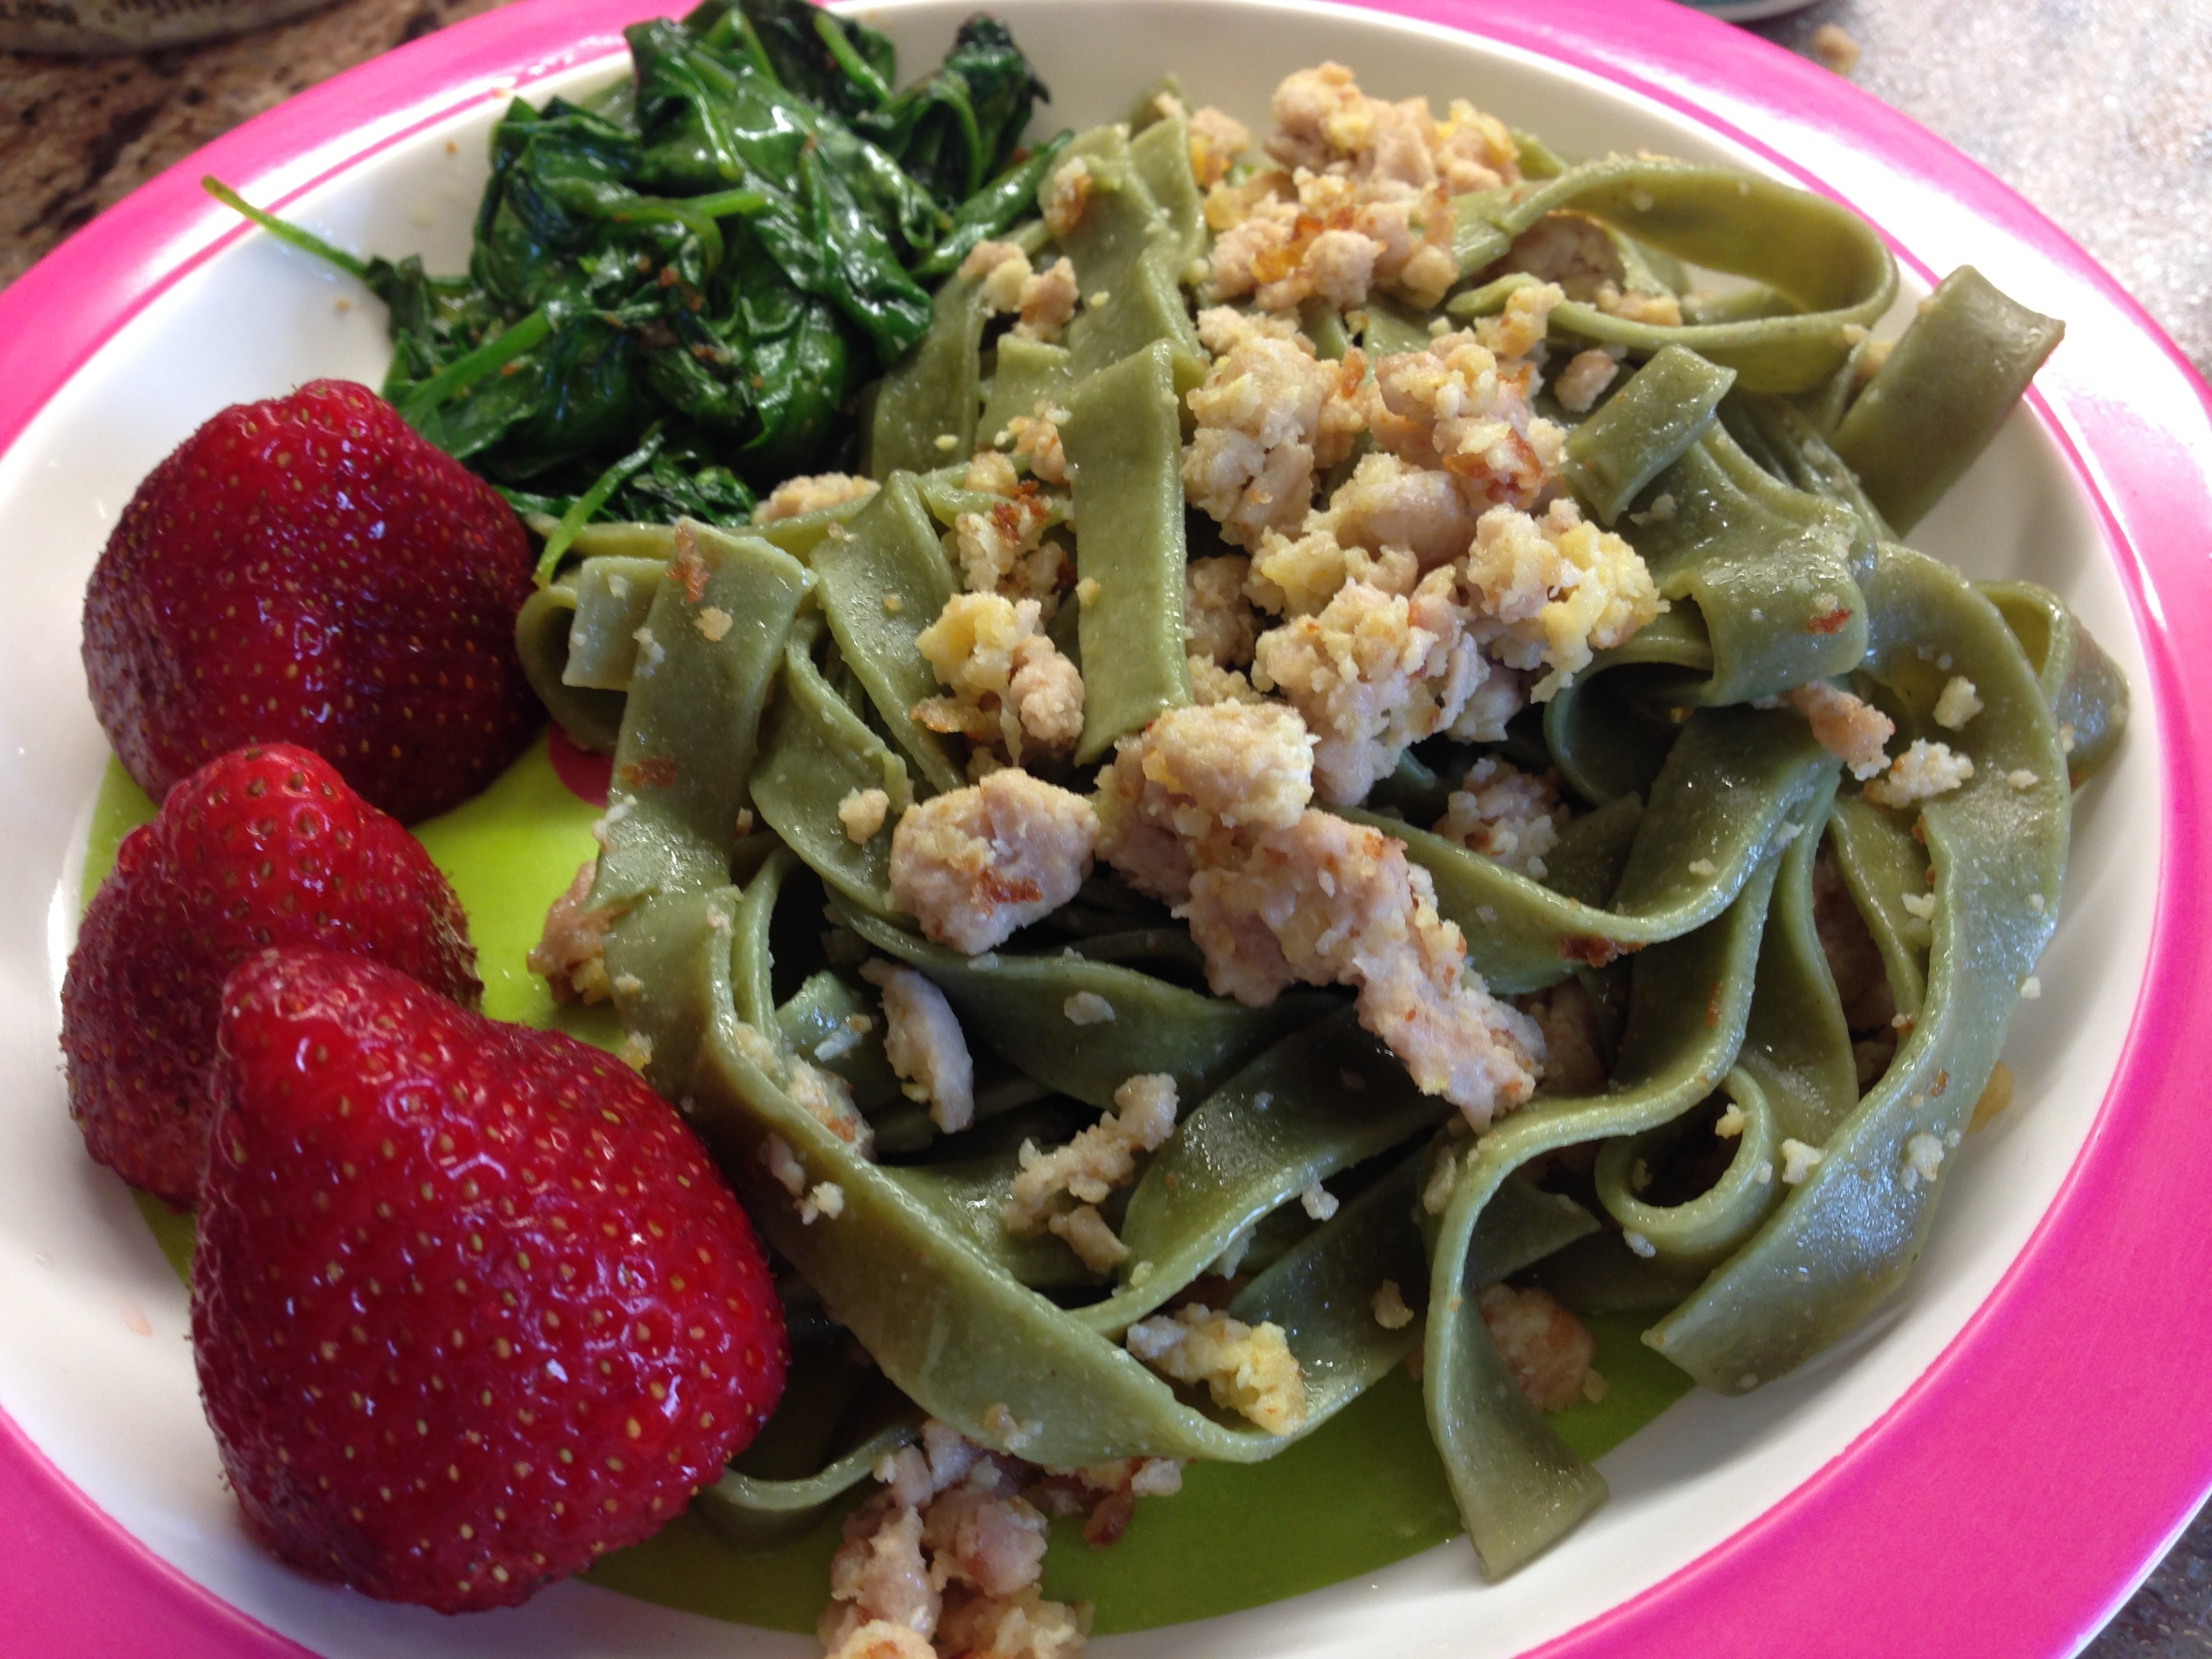 Spinach linguine with deconstructed meatballs, sautéed spinach and strawberries. A really fast dinner!